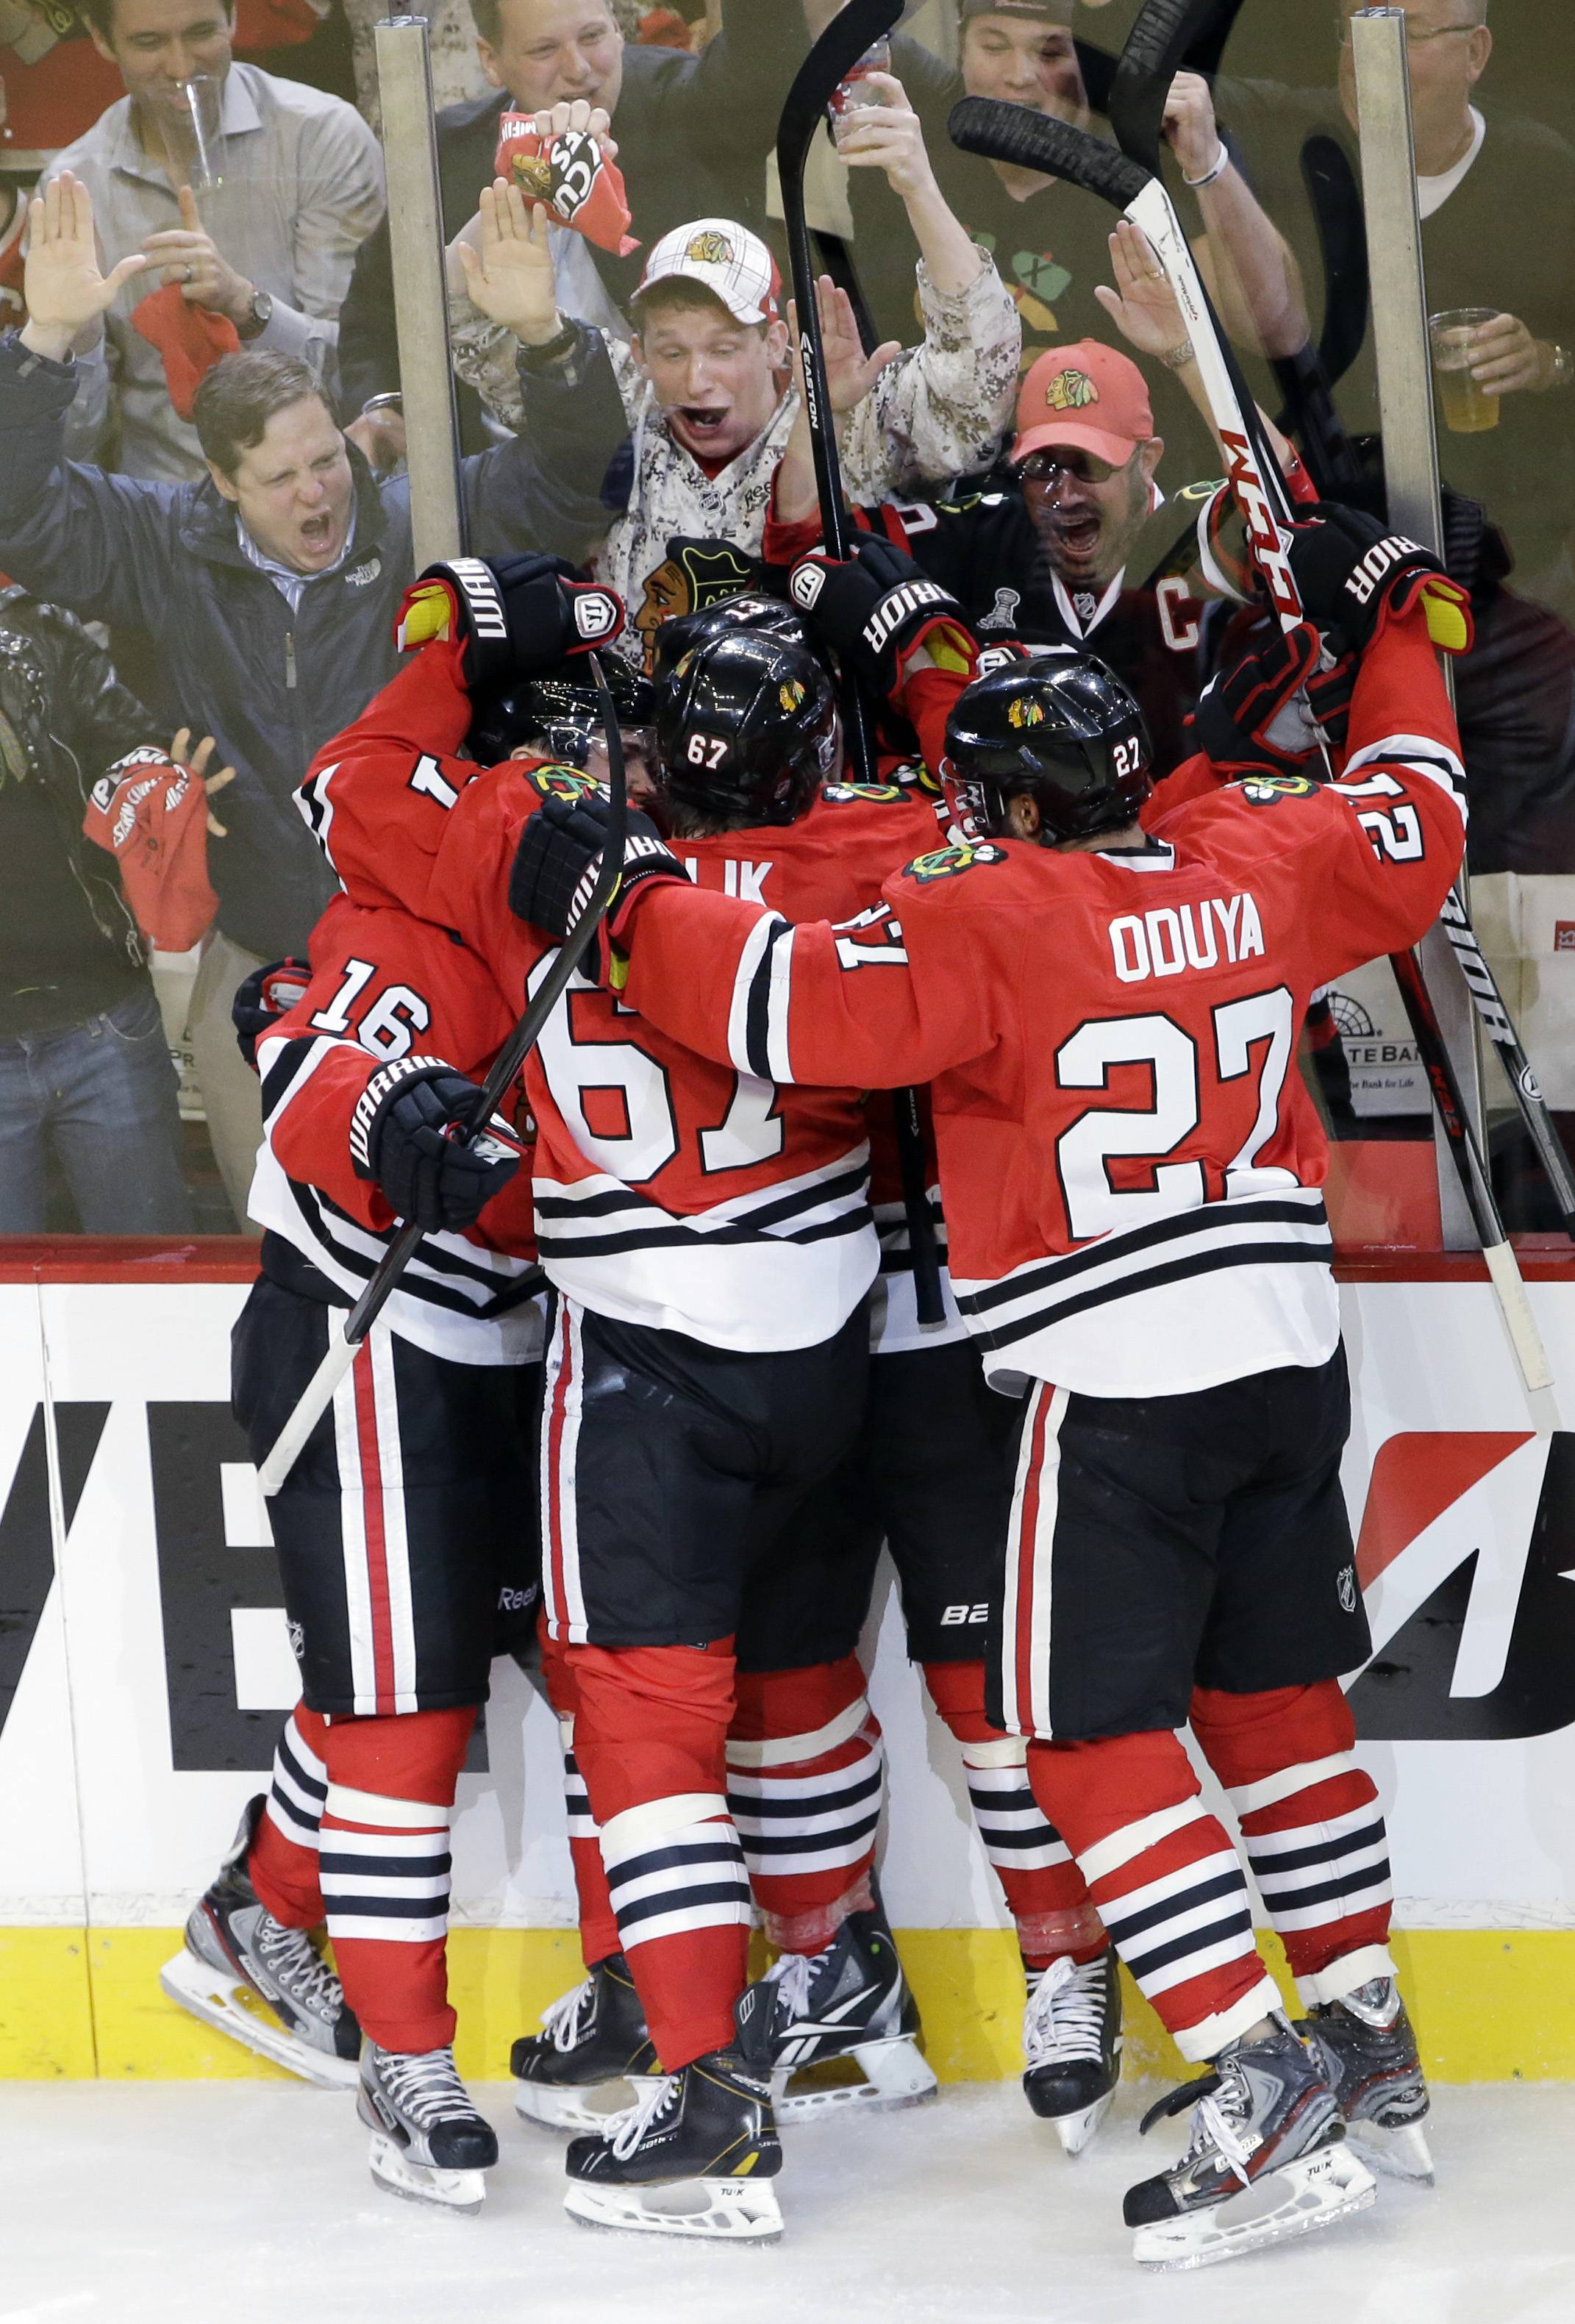 Chicago Blackhawks' Marcus Kruger (16), left, celebrates with teammates after scoring a goal during the third period of Game 1 of an NHL hockey playoffs Western Conference semifinal against the Detroit Red Wings in Chicago, Wednesday, May 15, 2013.